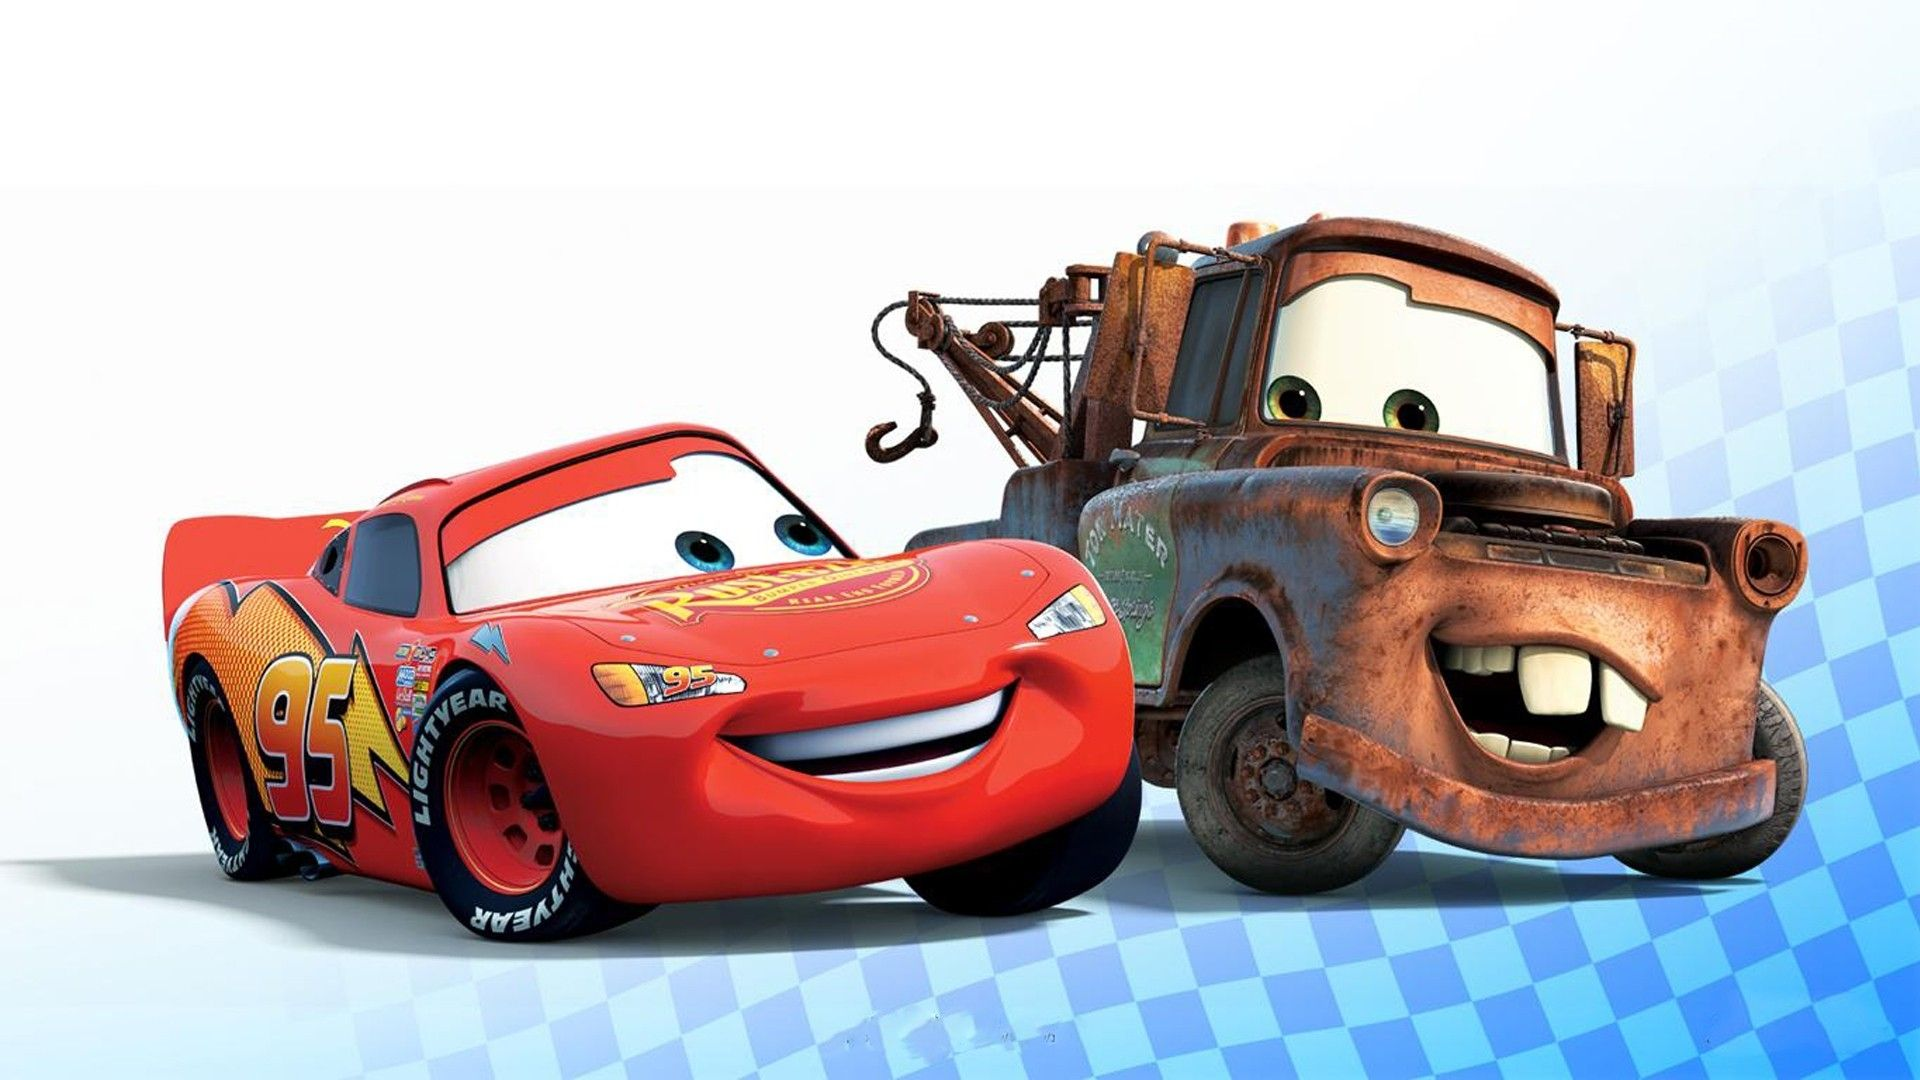 Download Wallpapers Download 2560x1440 Pixar Movies Cars Mater Lightning Mcqueen Disney 1920x1080 Wallpaper Miscel Disney Cars Wallpaper Cars Movie Mater Cars